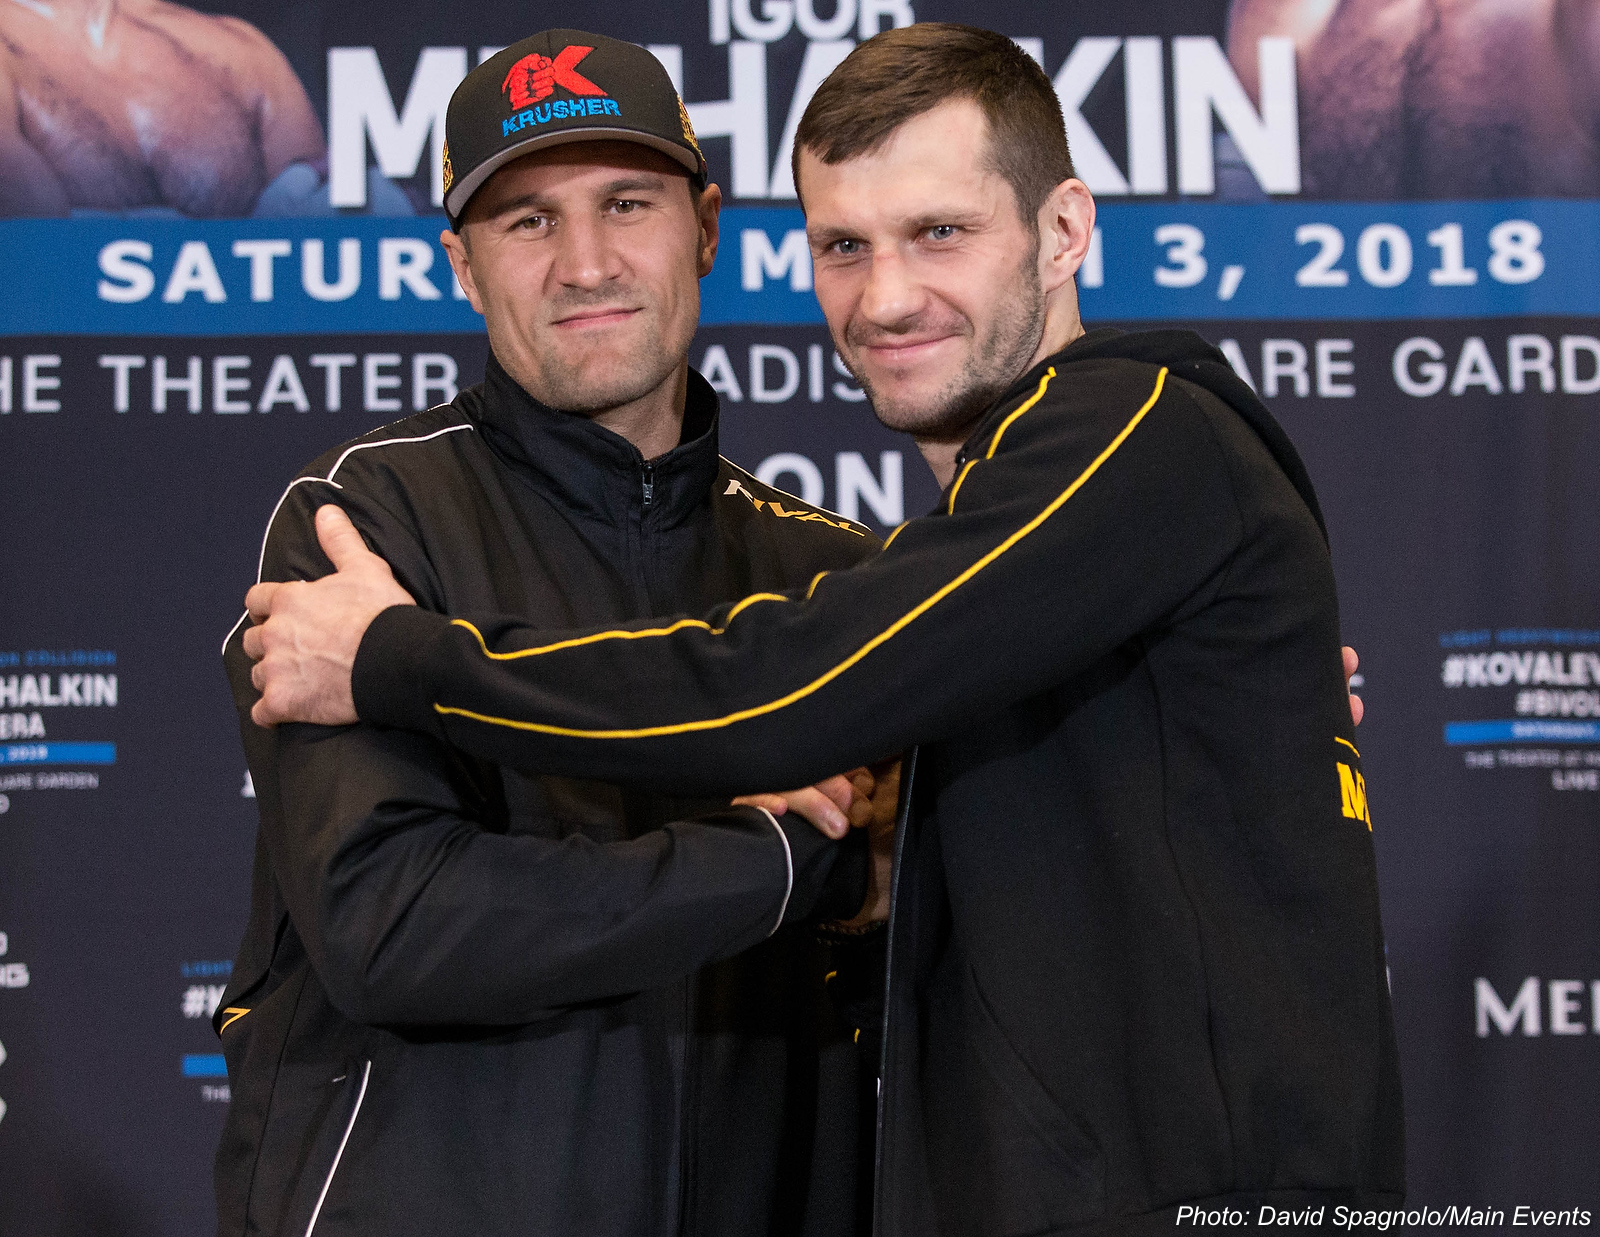 Light heavyweight fighters Sergey Kovalev (left) and Igor Mikhalkin aren't strangers. They have known each other since their amateur days as Russian teenagers. Photo: David Spagnolo/Main Events